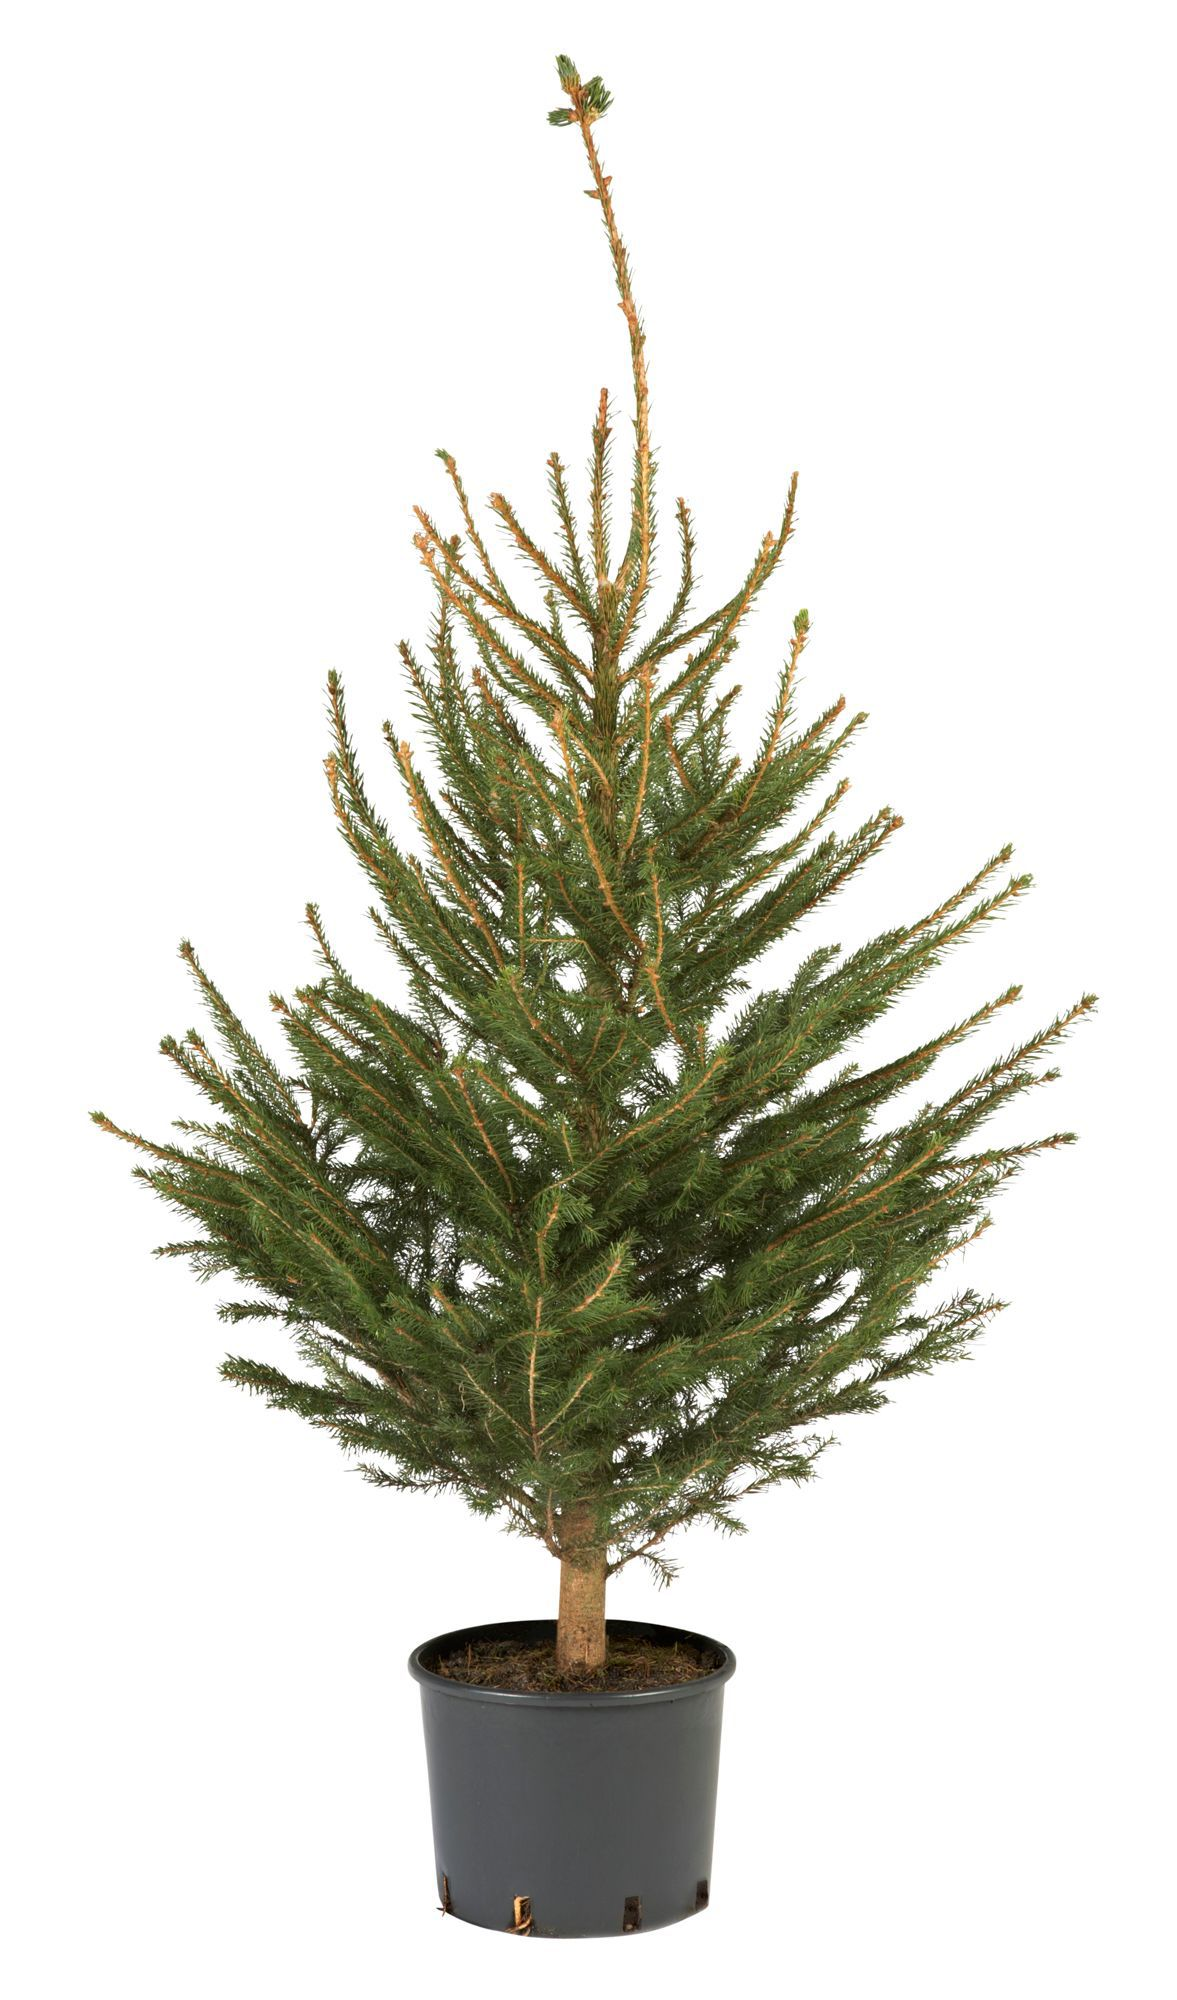 Large Norway spruce Real christmas tree | Departments ...